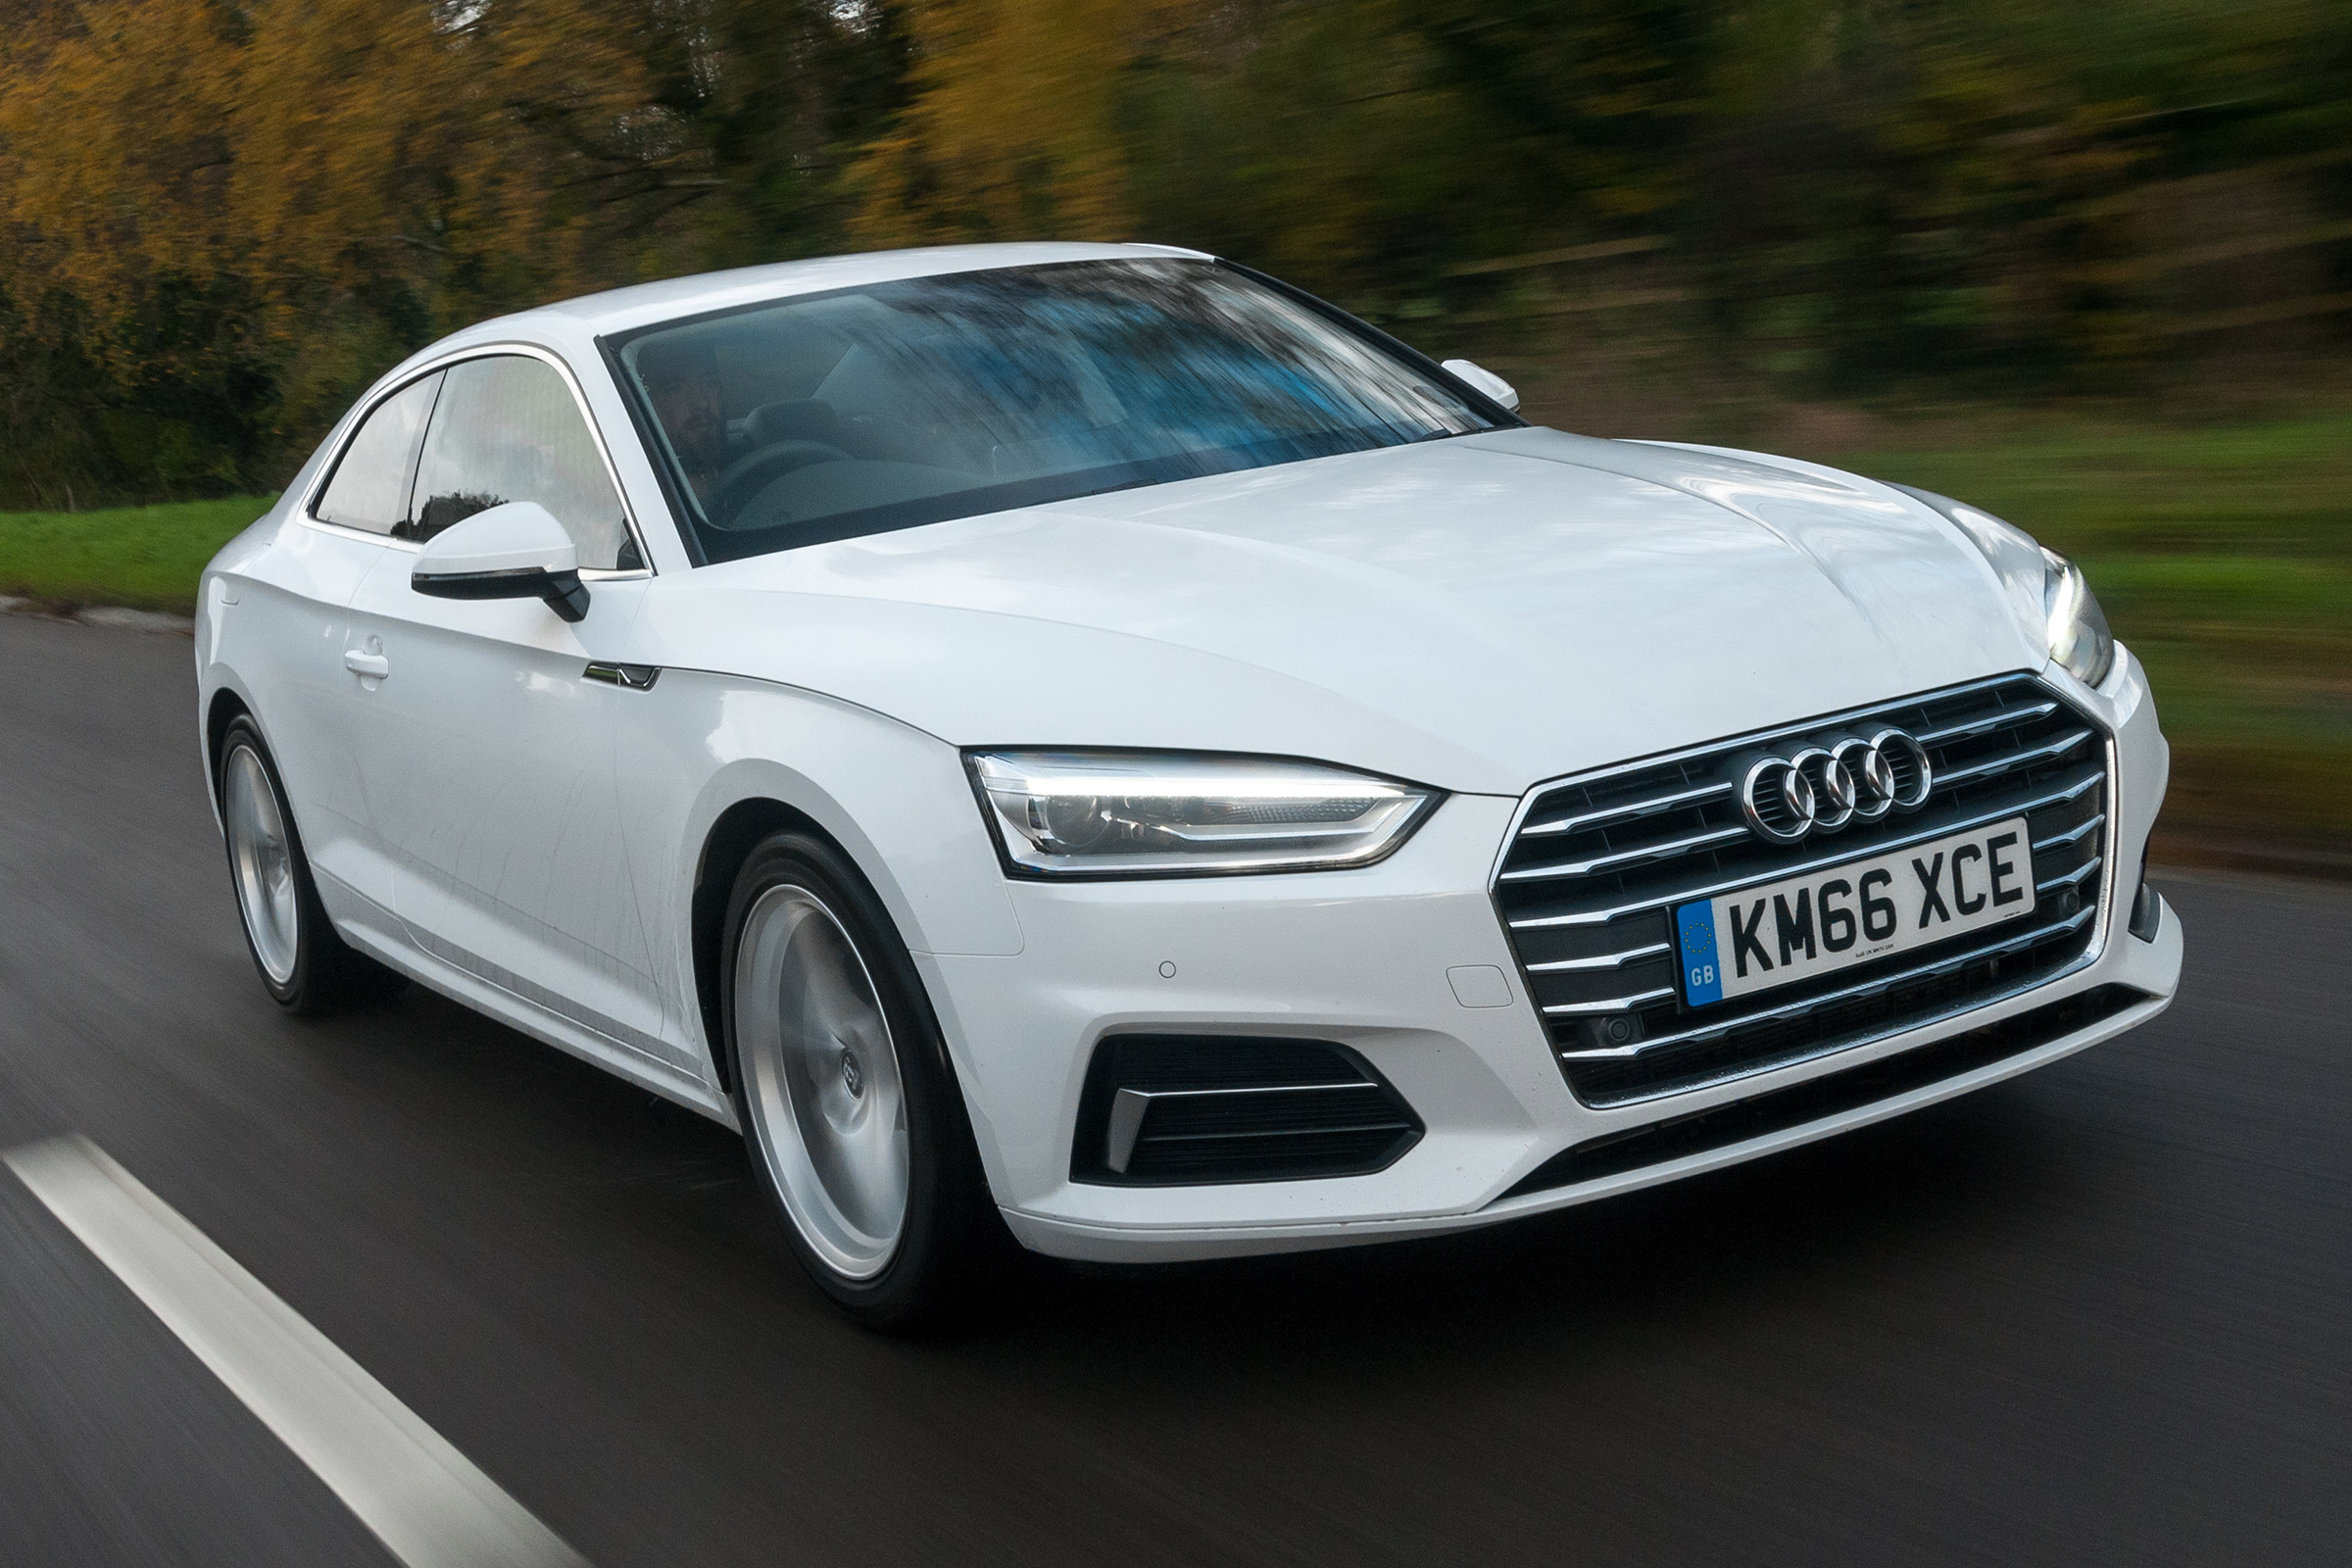 2017 Audi A5 Coupe Test Drive Front View (Photo 4 of 21)